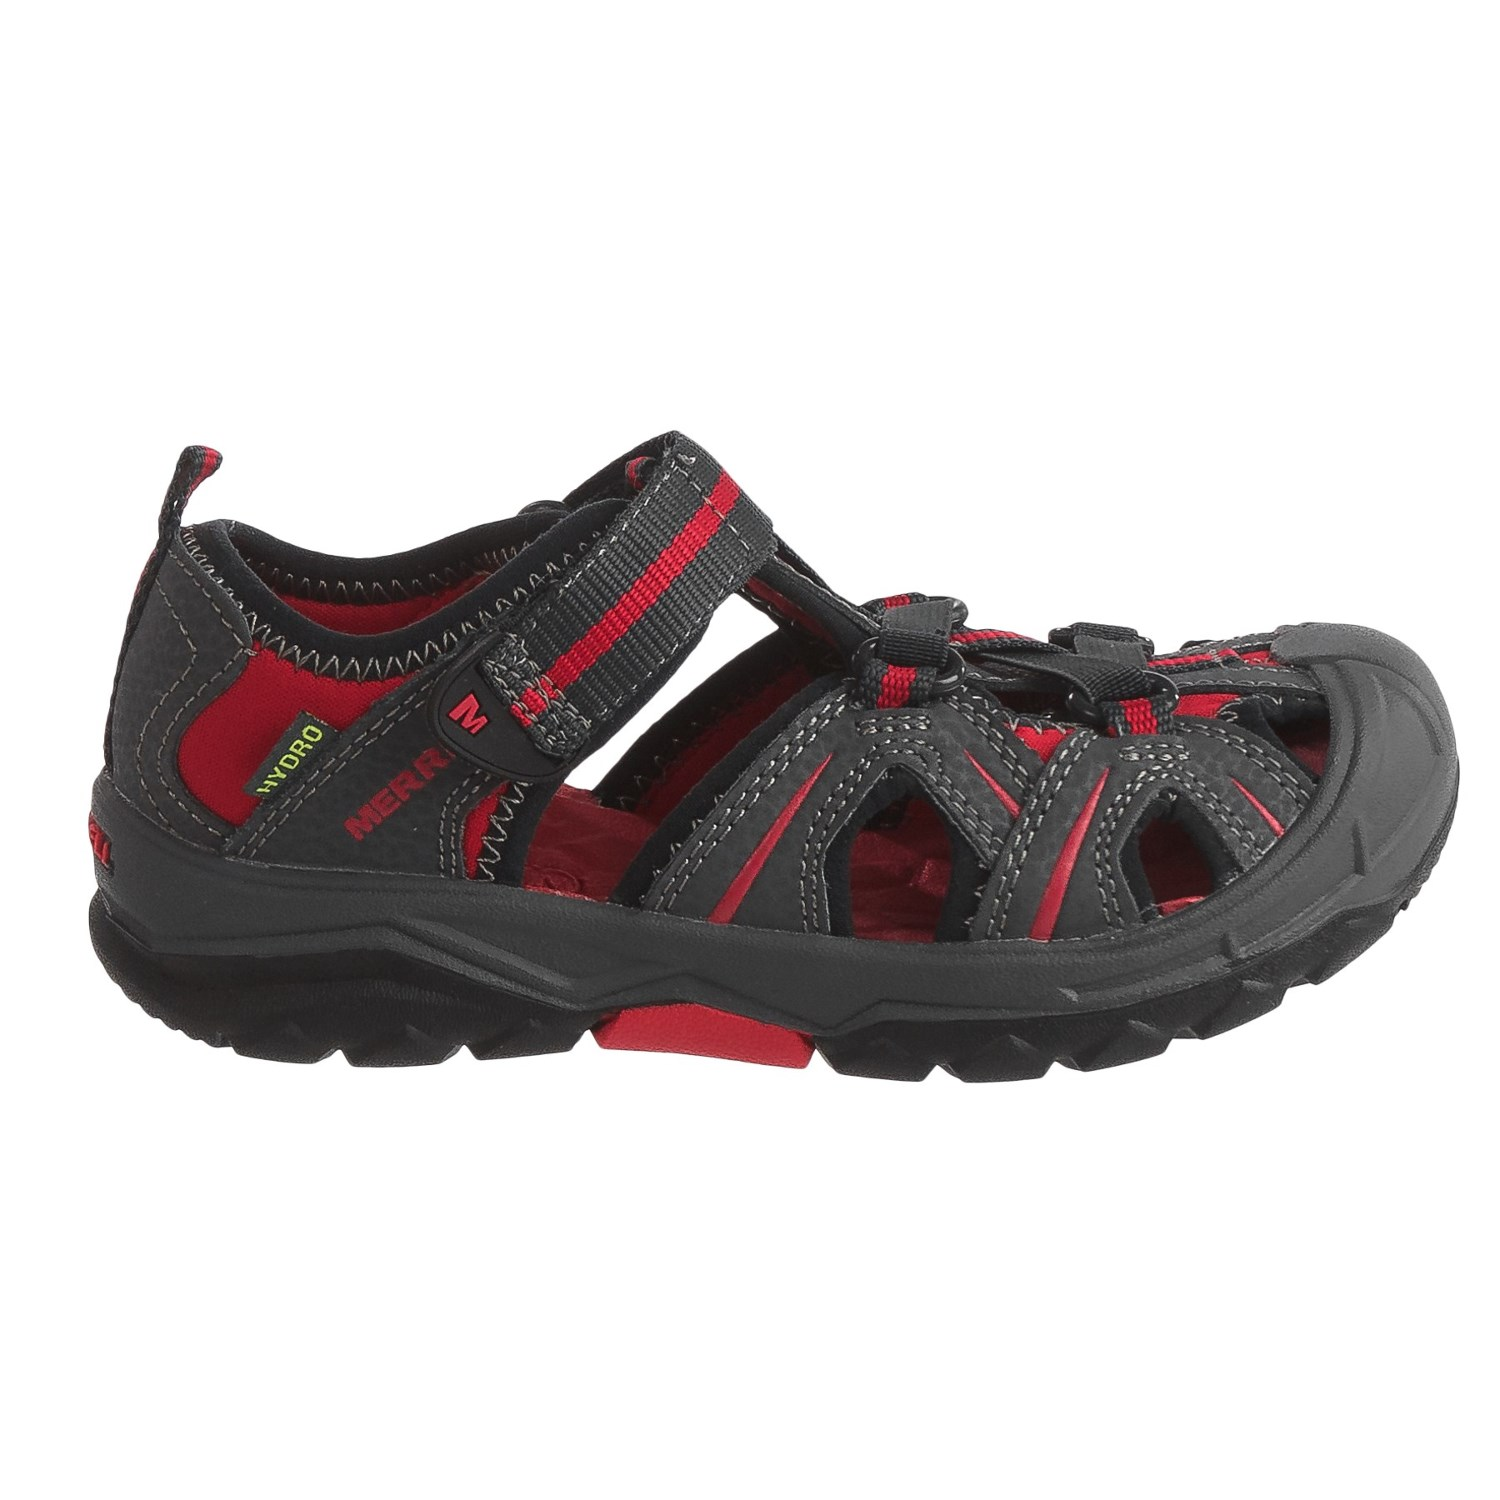 88cb2a4e4 Merrell Hydro Water Sandals (For Little and Big Boys) - Save 50%